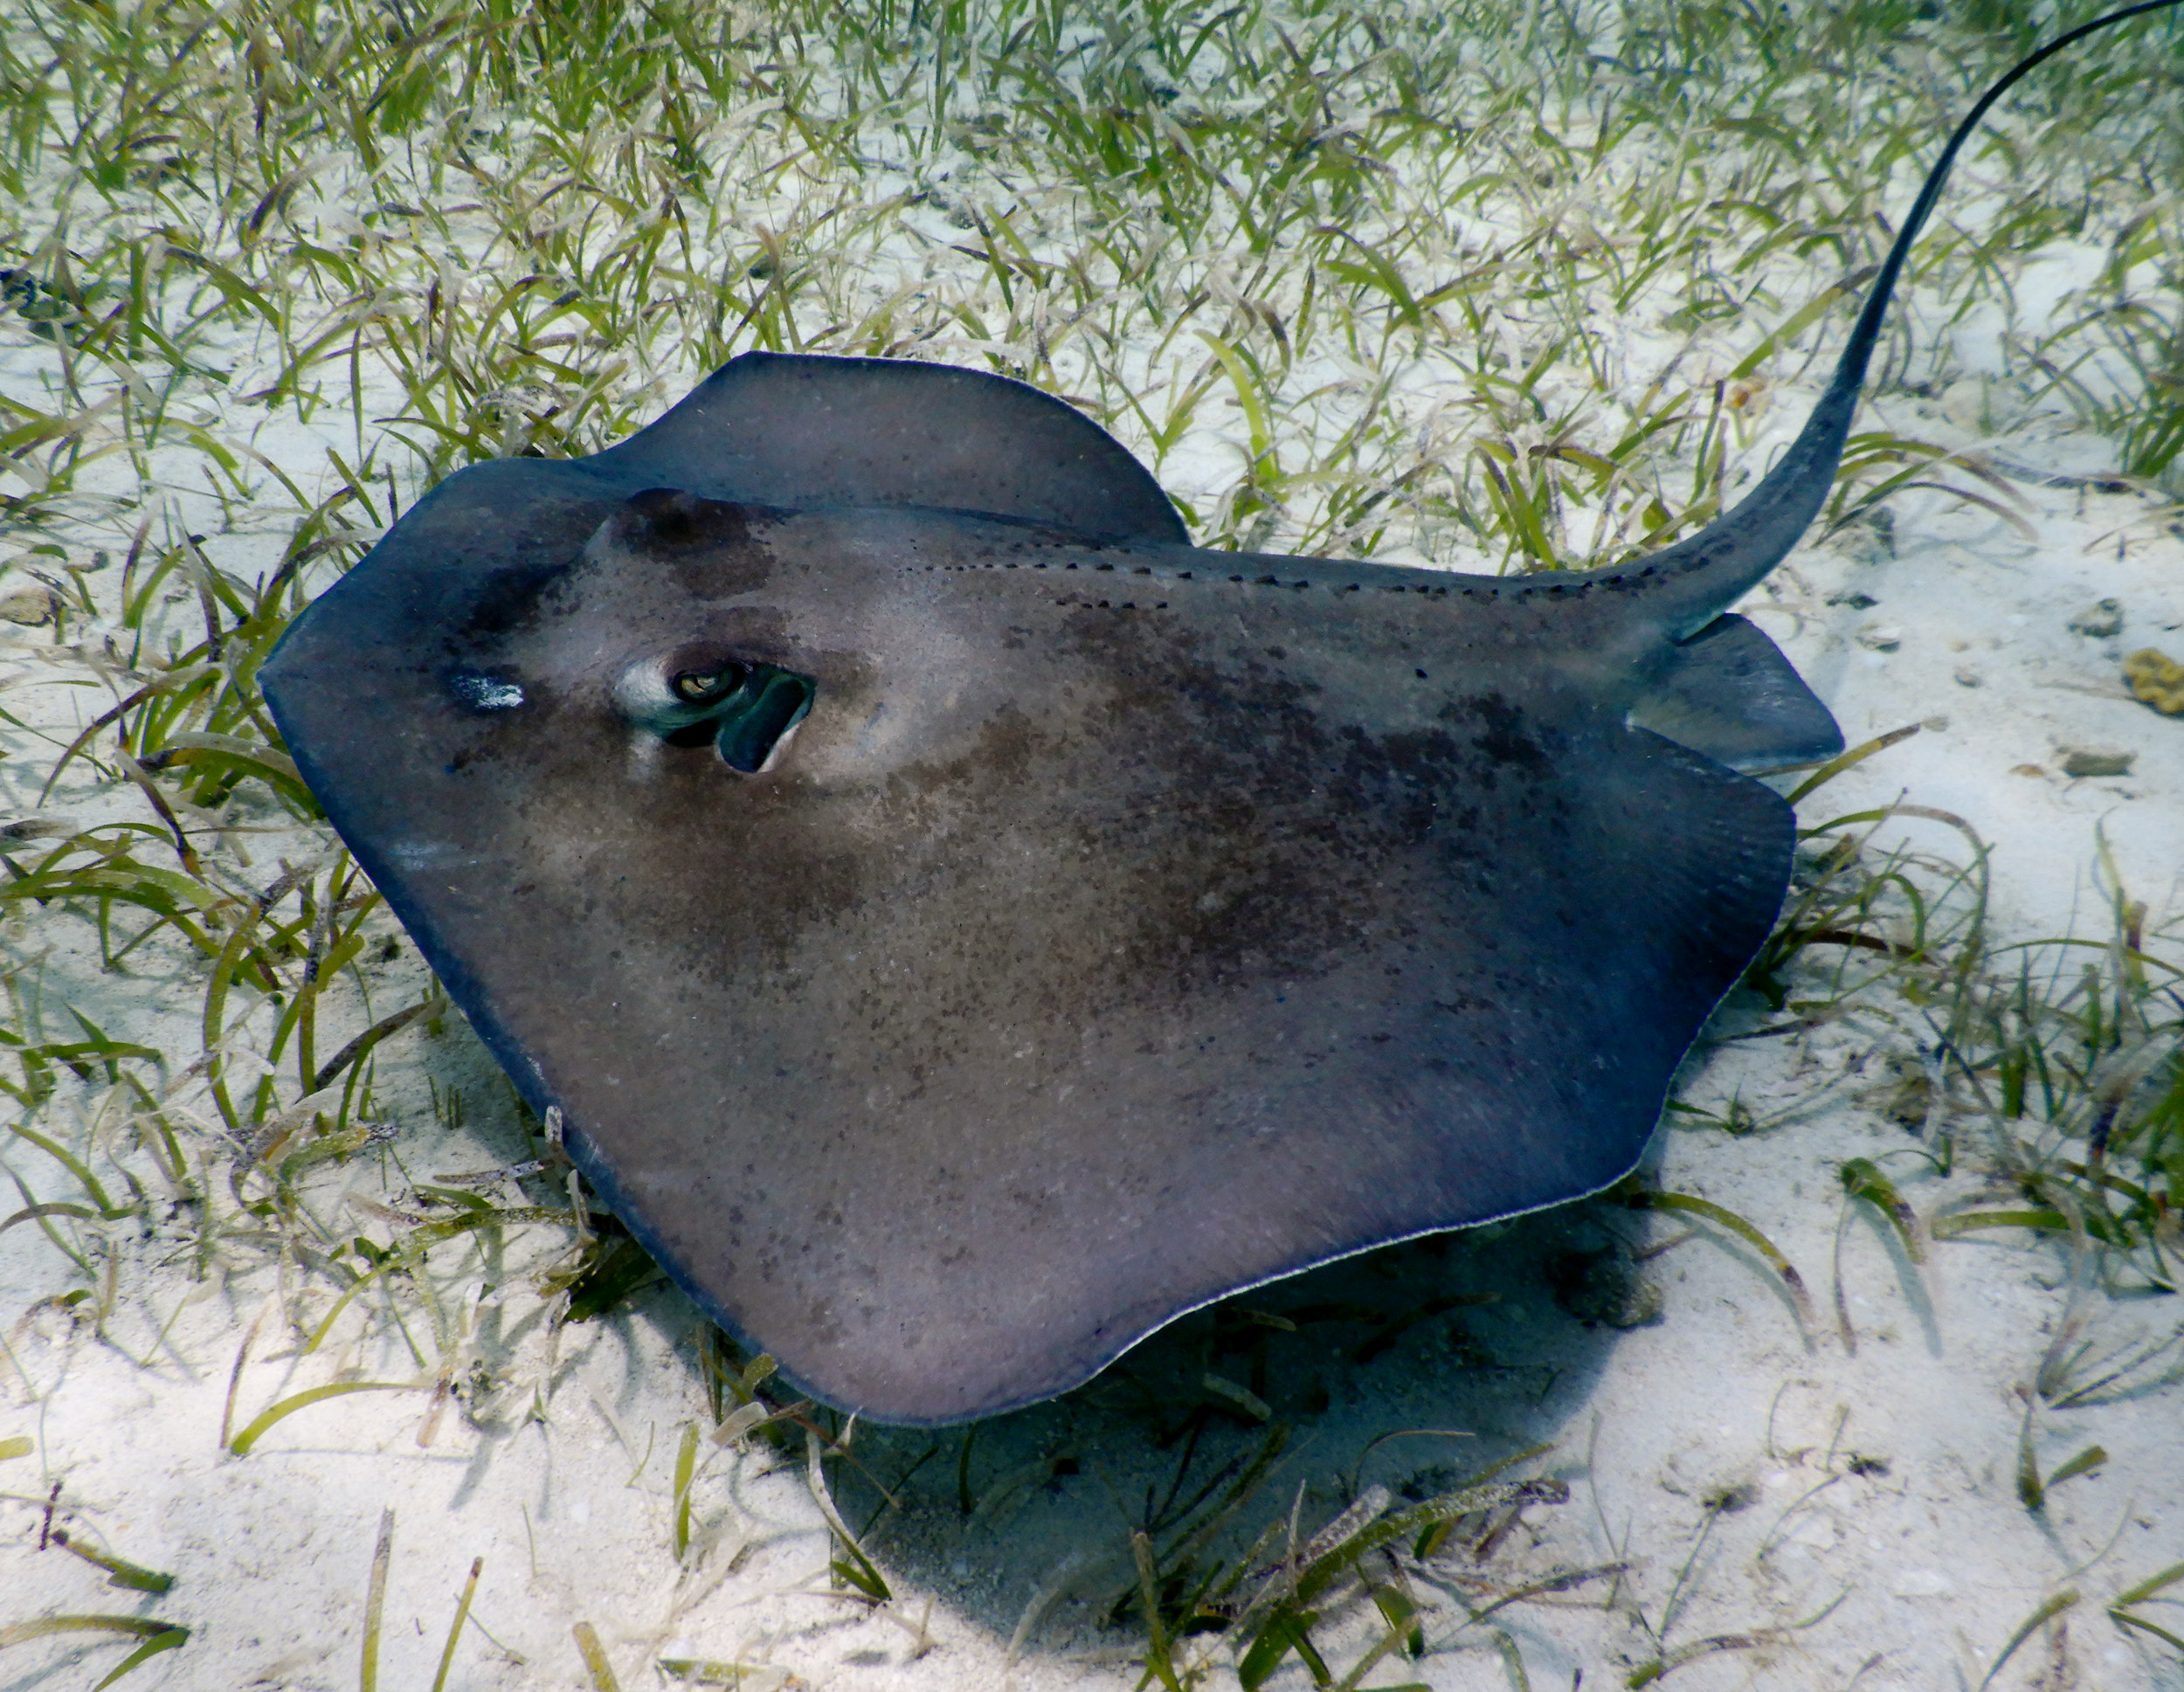 A southern stingray ( Hypanus americanus ) off the coast of Eleuthera.